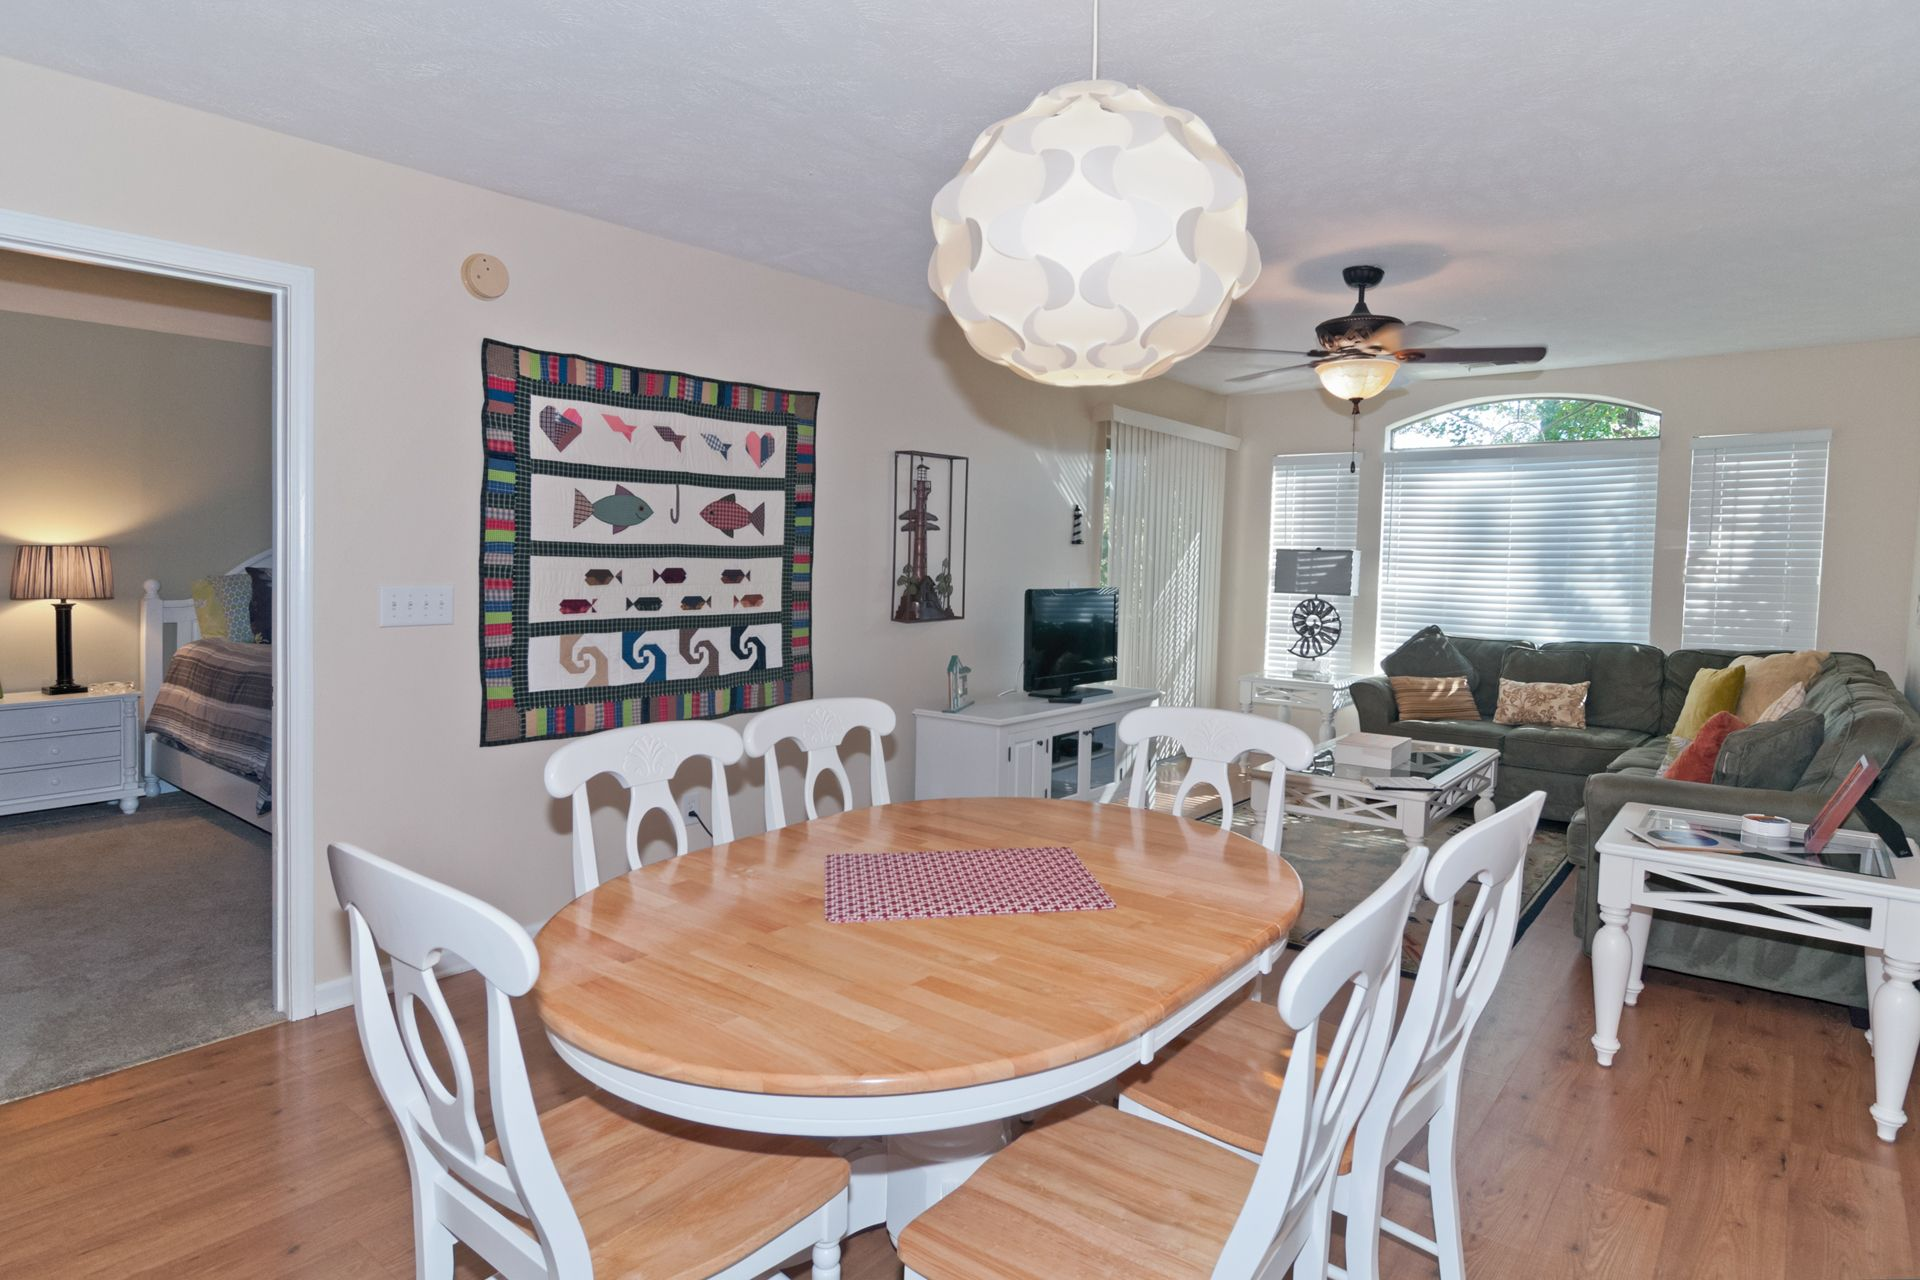 Dining room with seating for 6additional seating at the